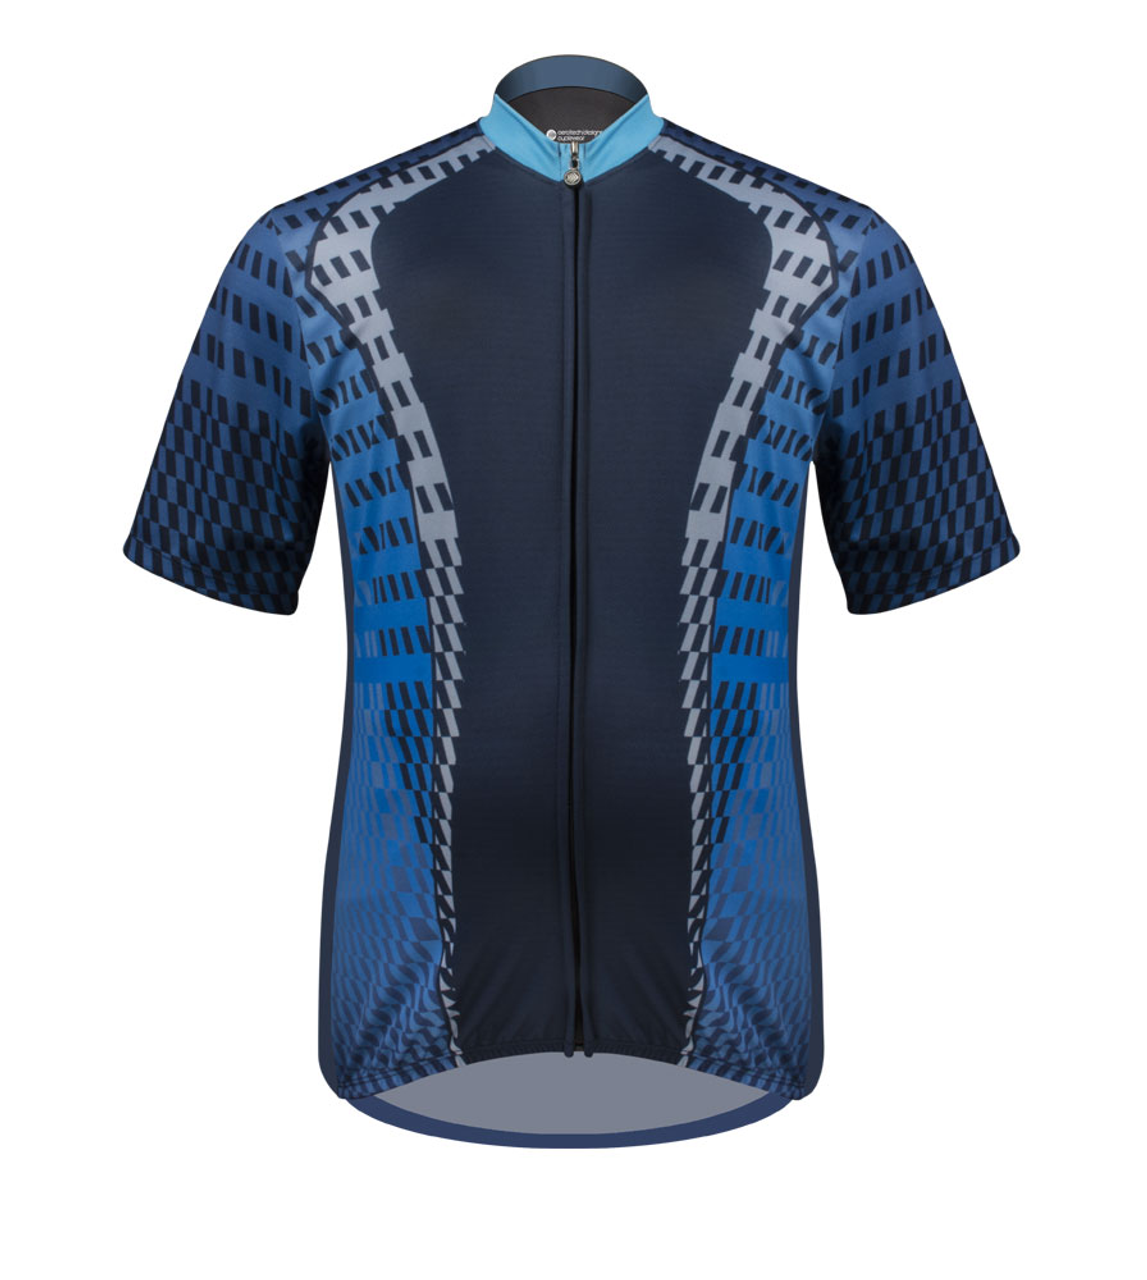 Aero Tech Power Tread Cycling Jersey - Sizes for Whole Family 2df3899b2